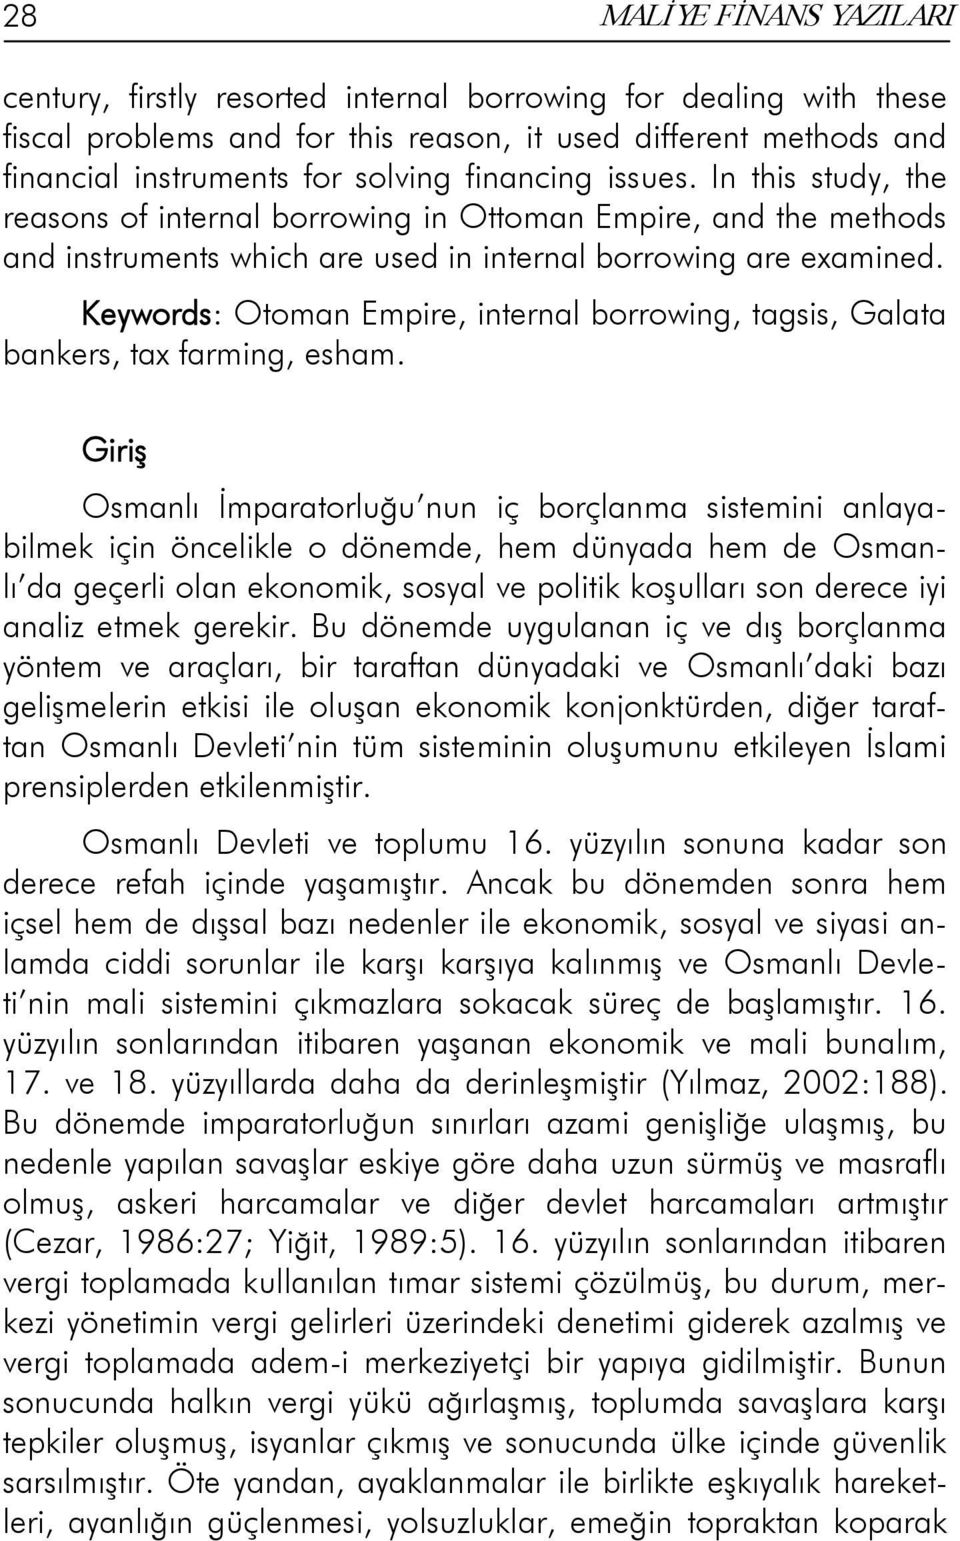 Keywords: Otoman Empire, internal borrowing, tagsis, Galata bankers, tax farming, esham.